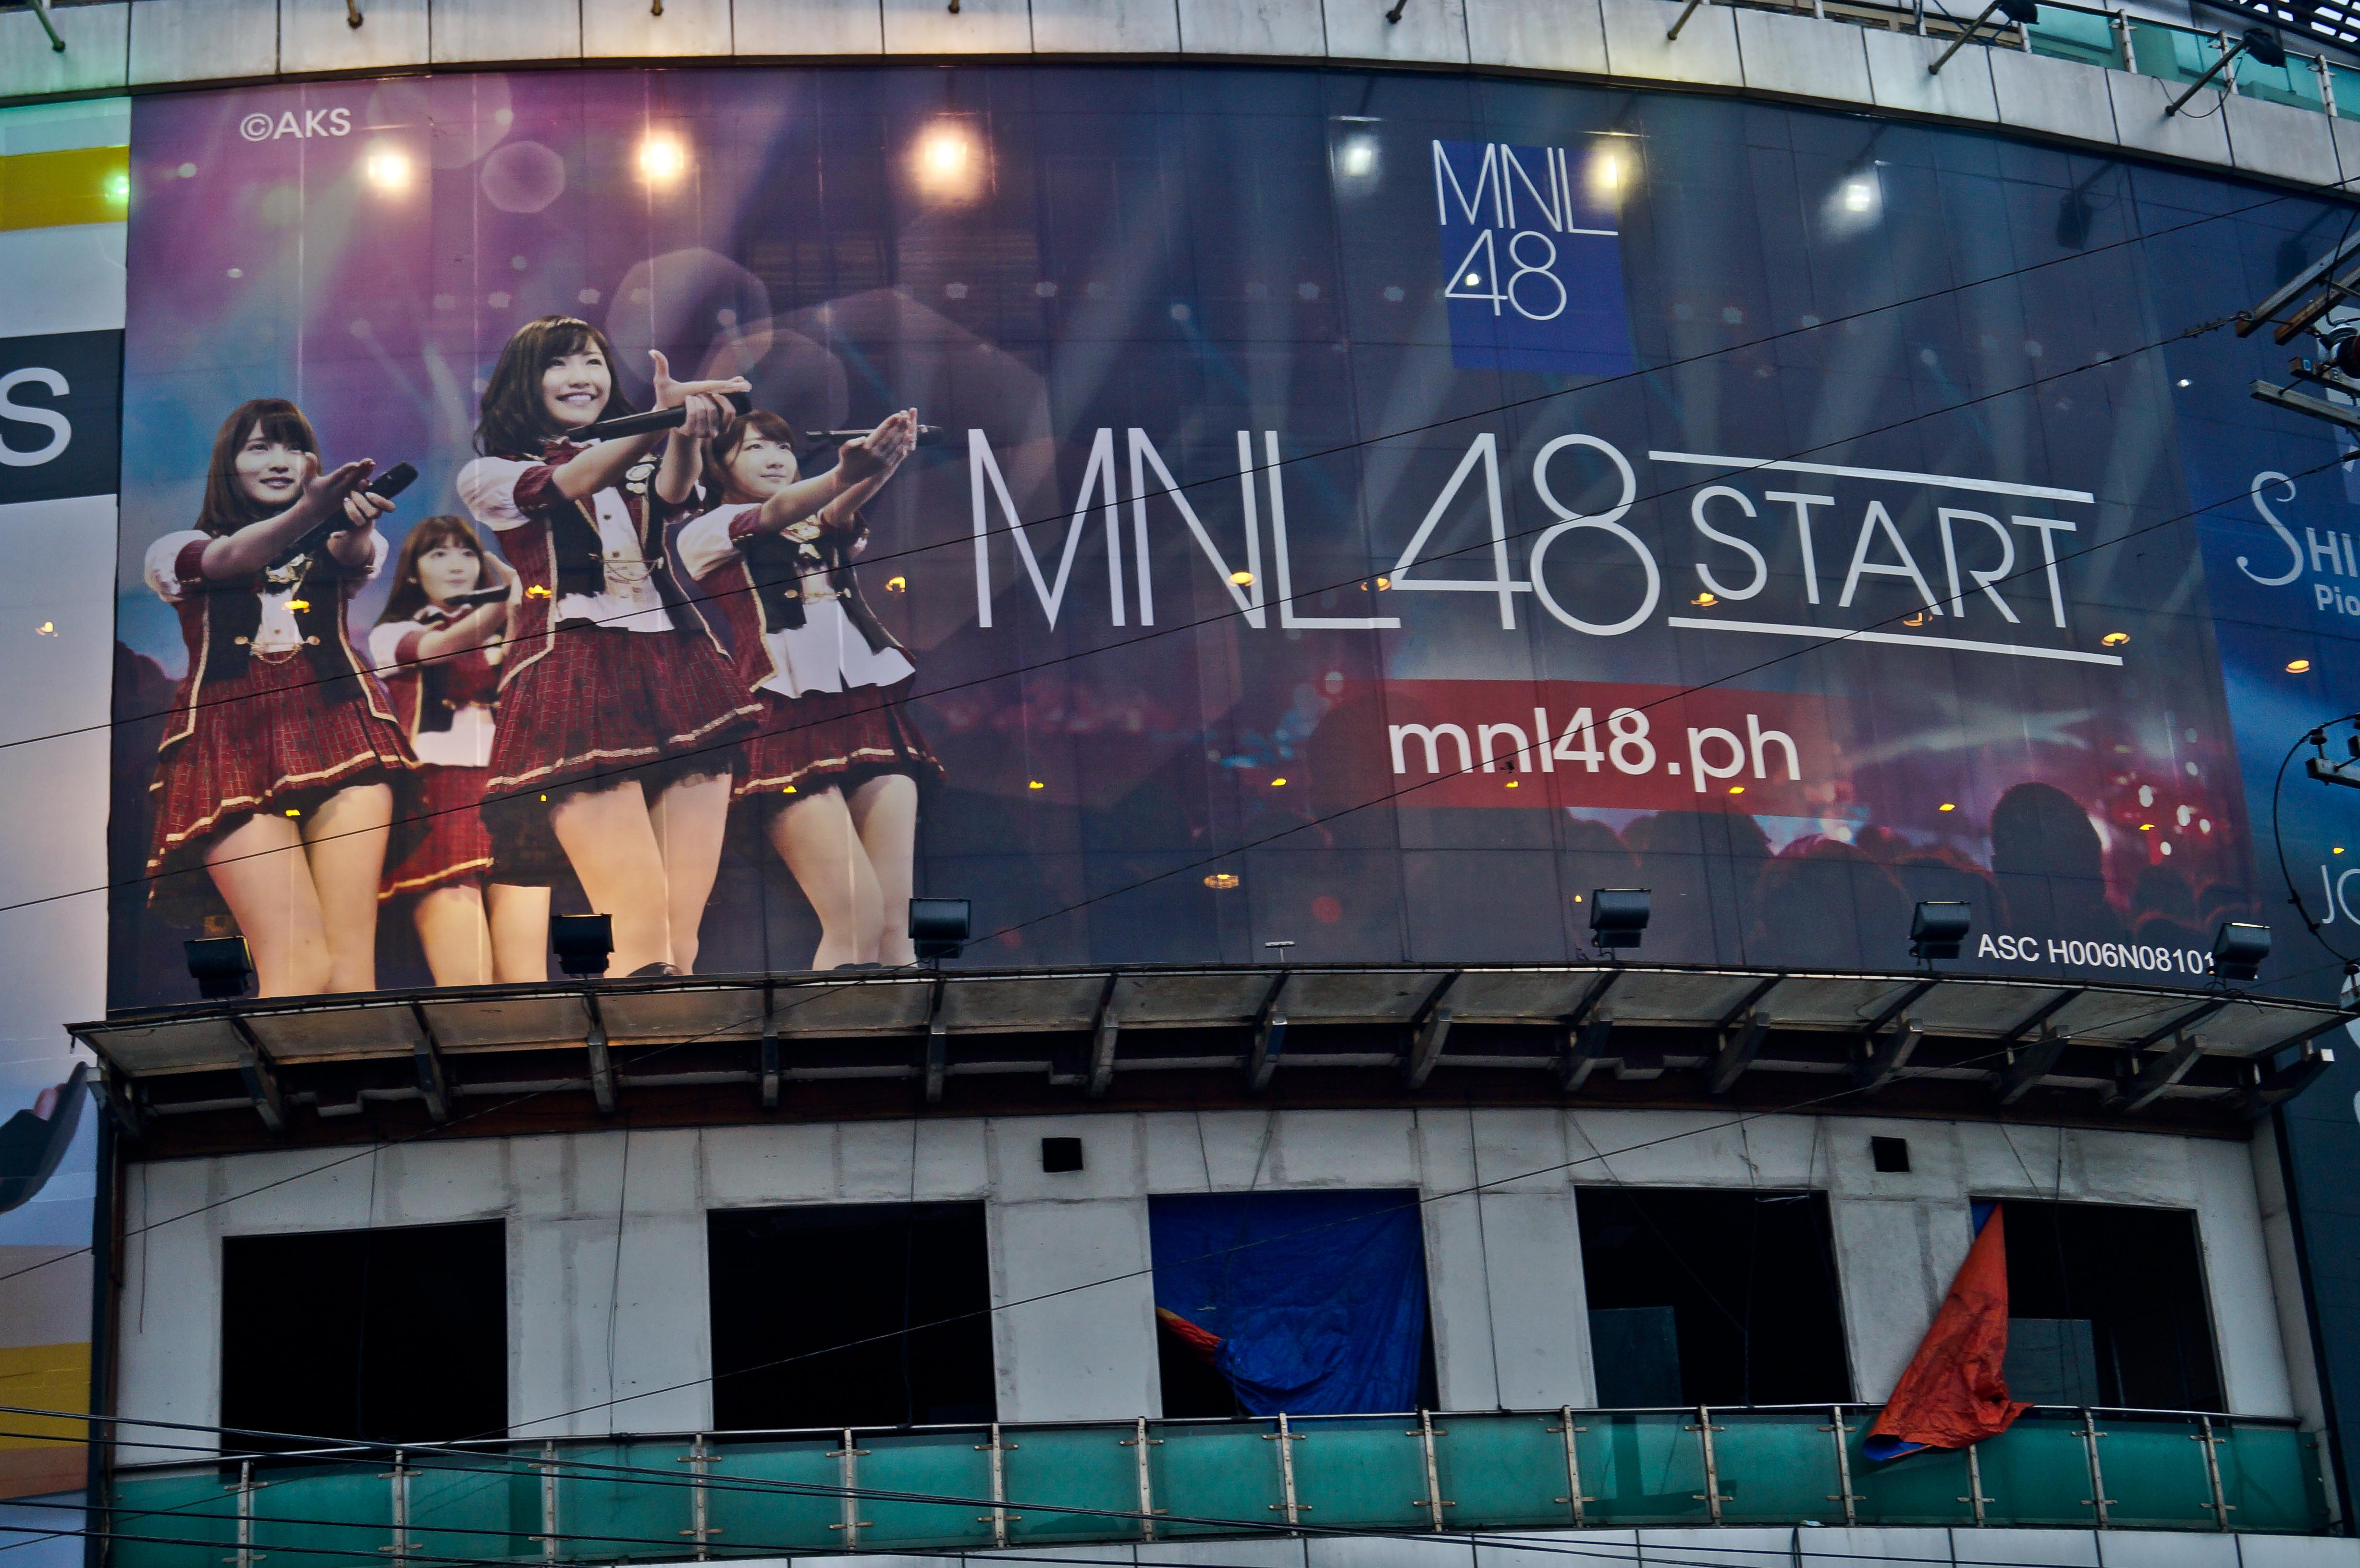 The Search  Continues for MNL48 with Billboards Now Up